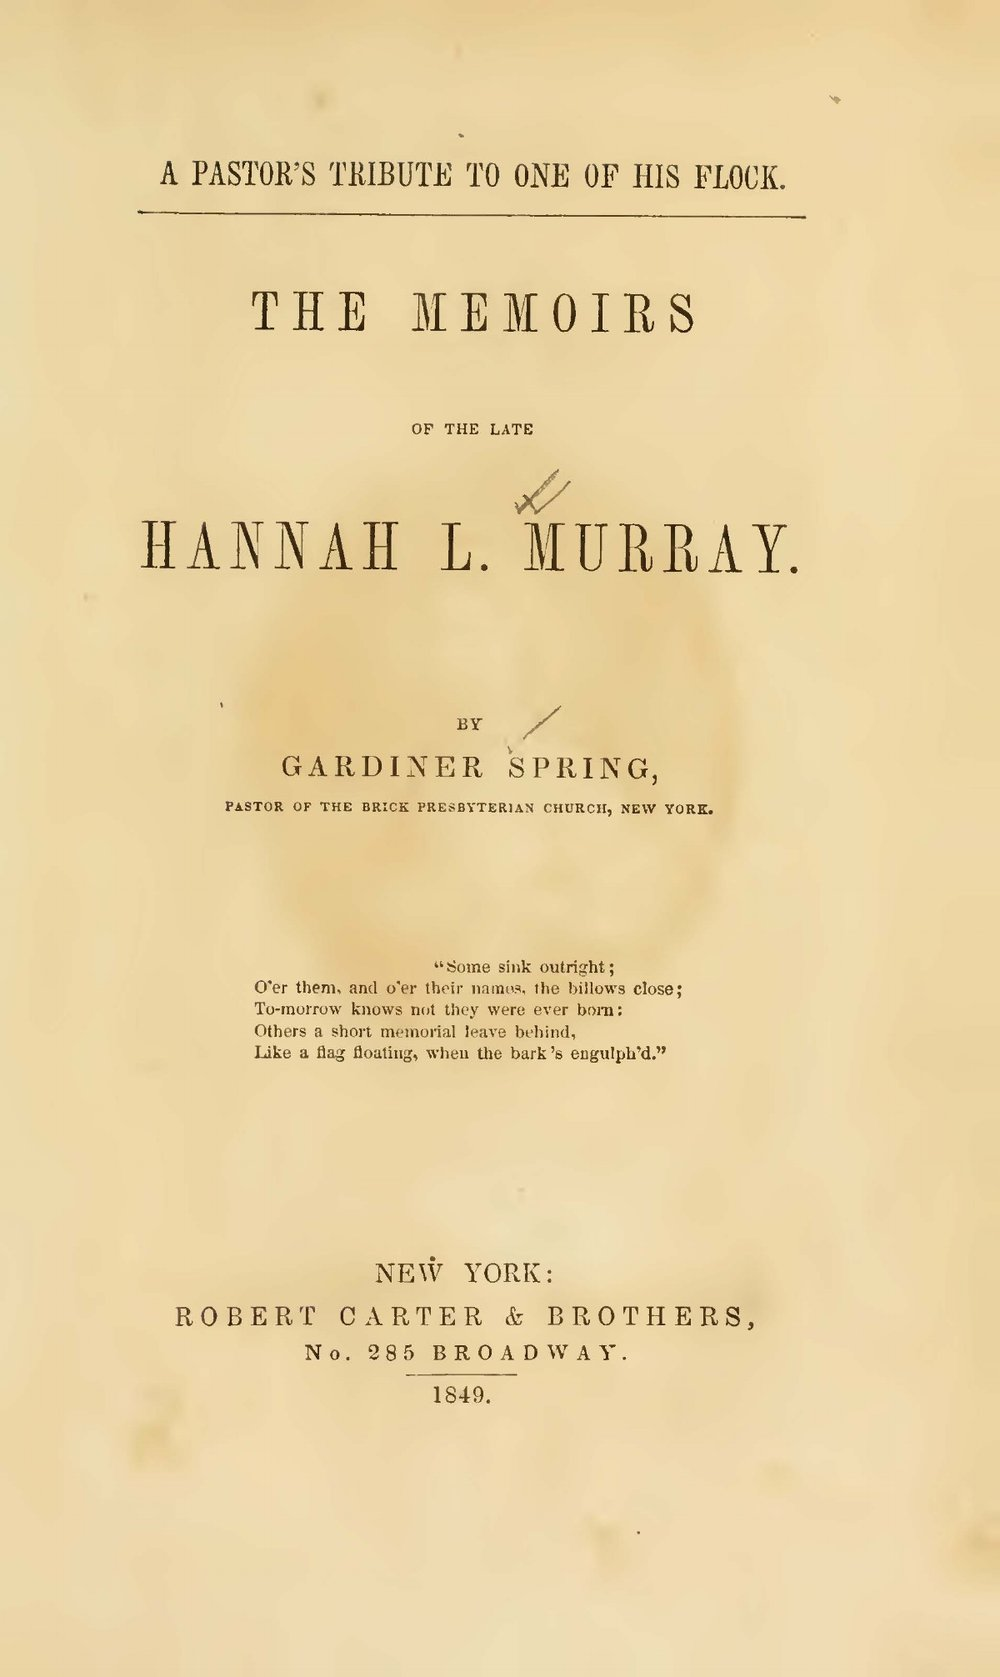 Spring, Gardiner, A Pastor's Tribute to One of His Flock The Memoirs of the Late Hannah L. Murray Title Page.jpg